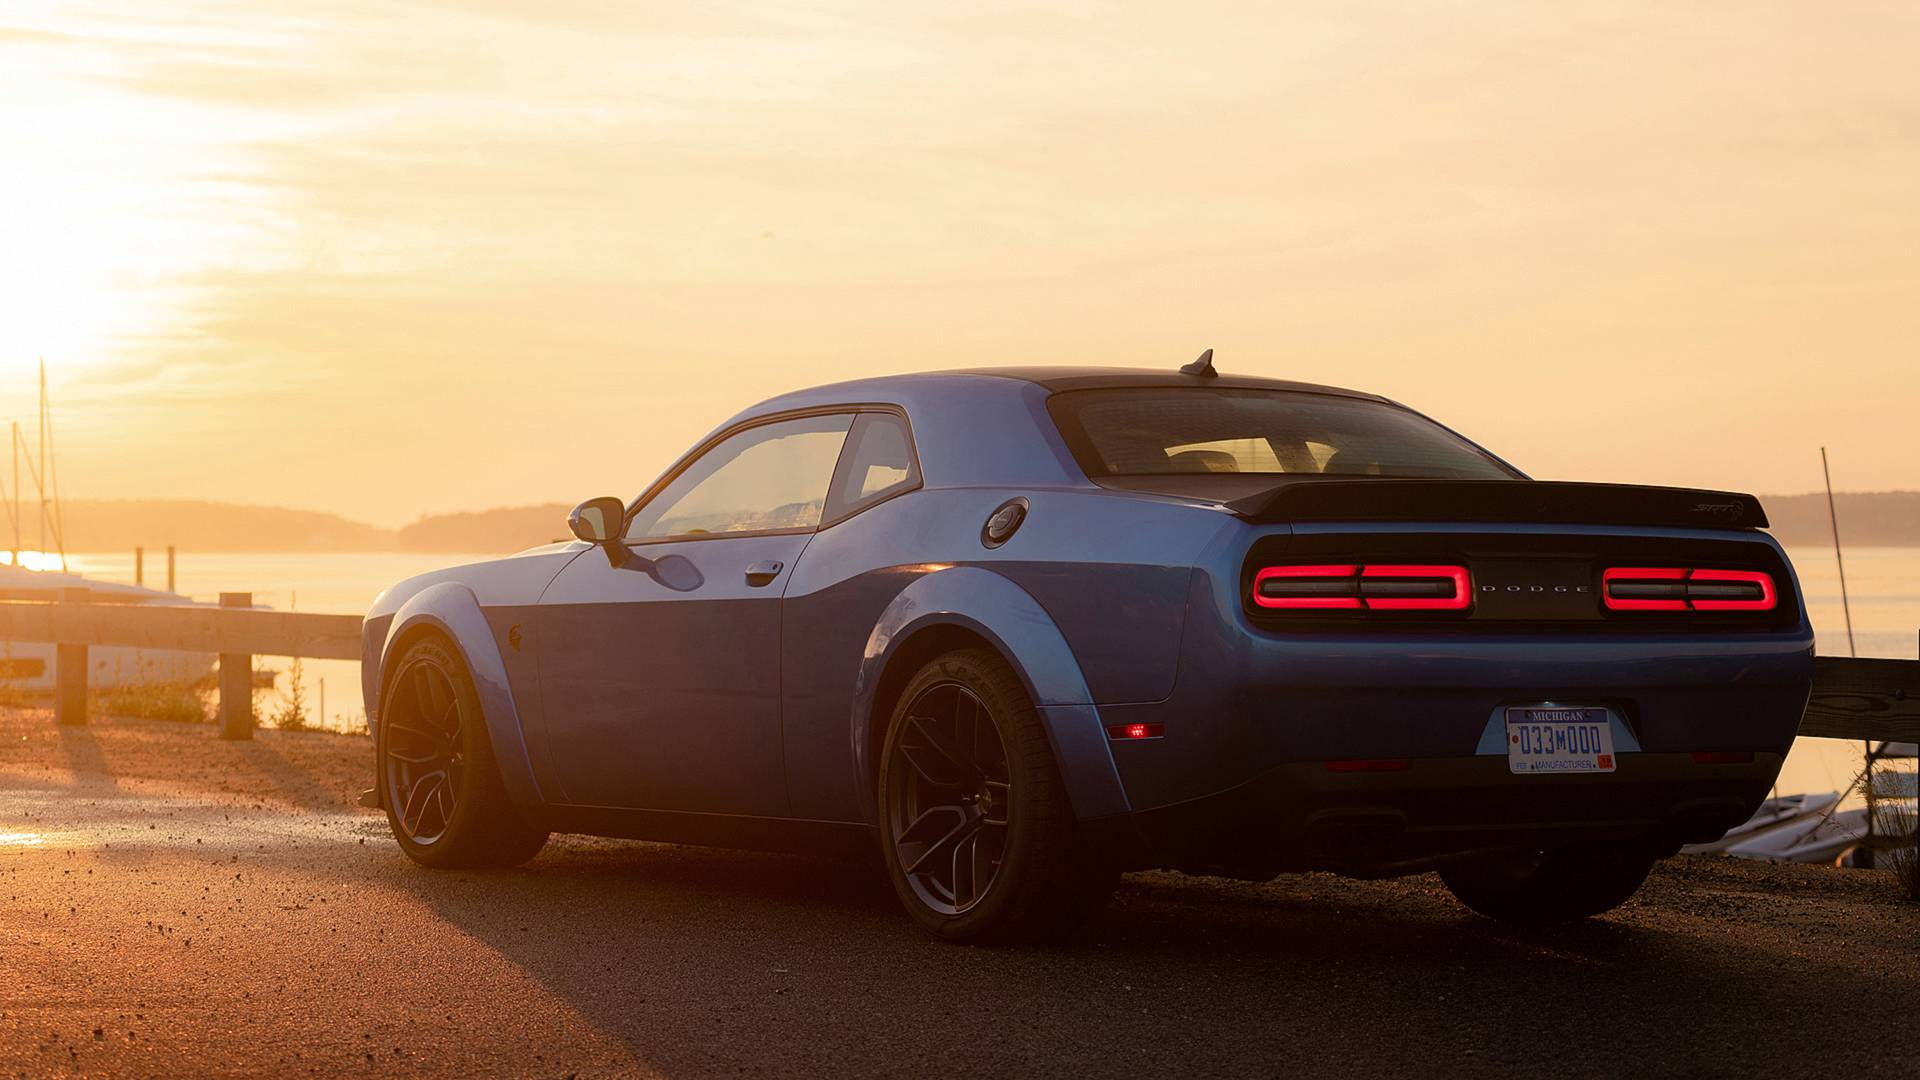 2019 Dodge Challenger Srt Hellcat Redeye Rolls Off Assembly Line